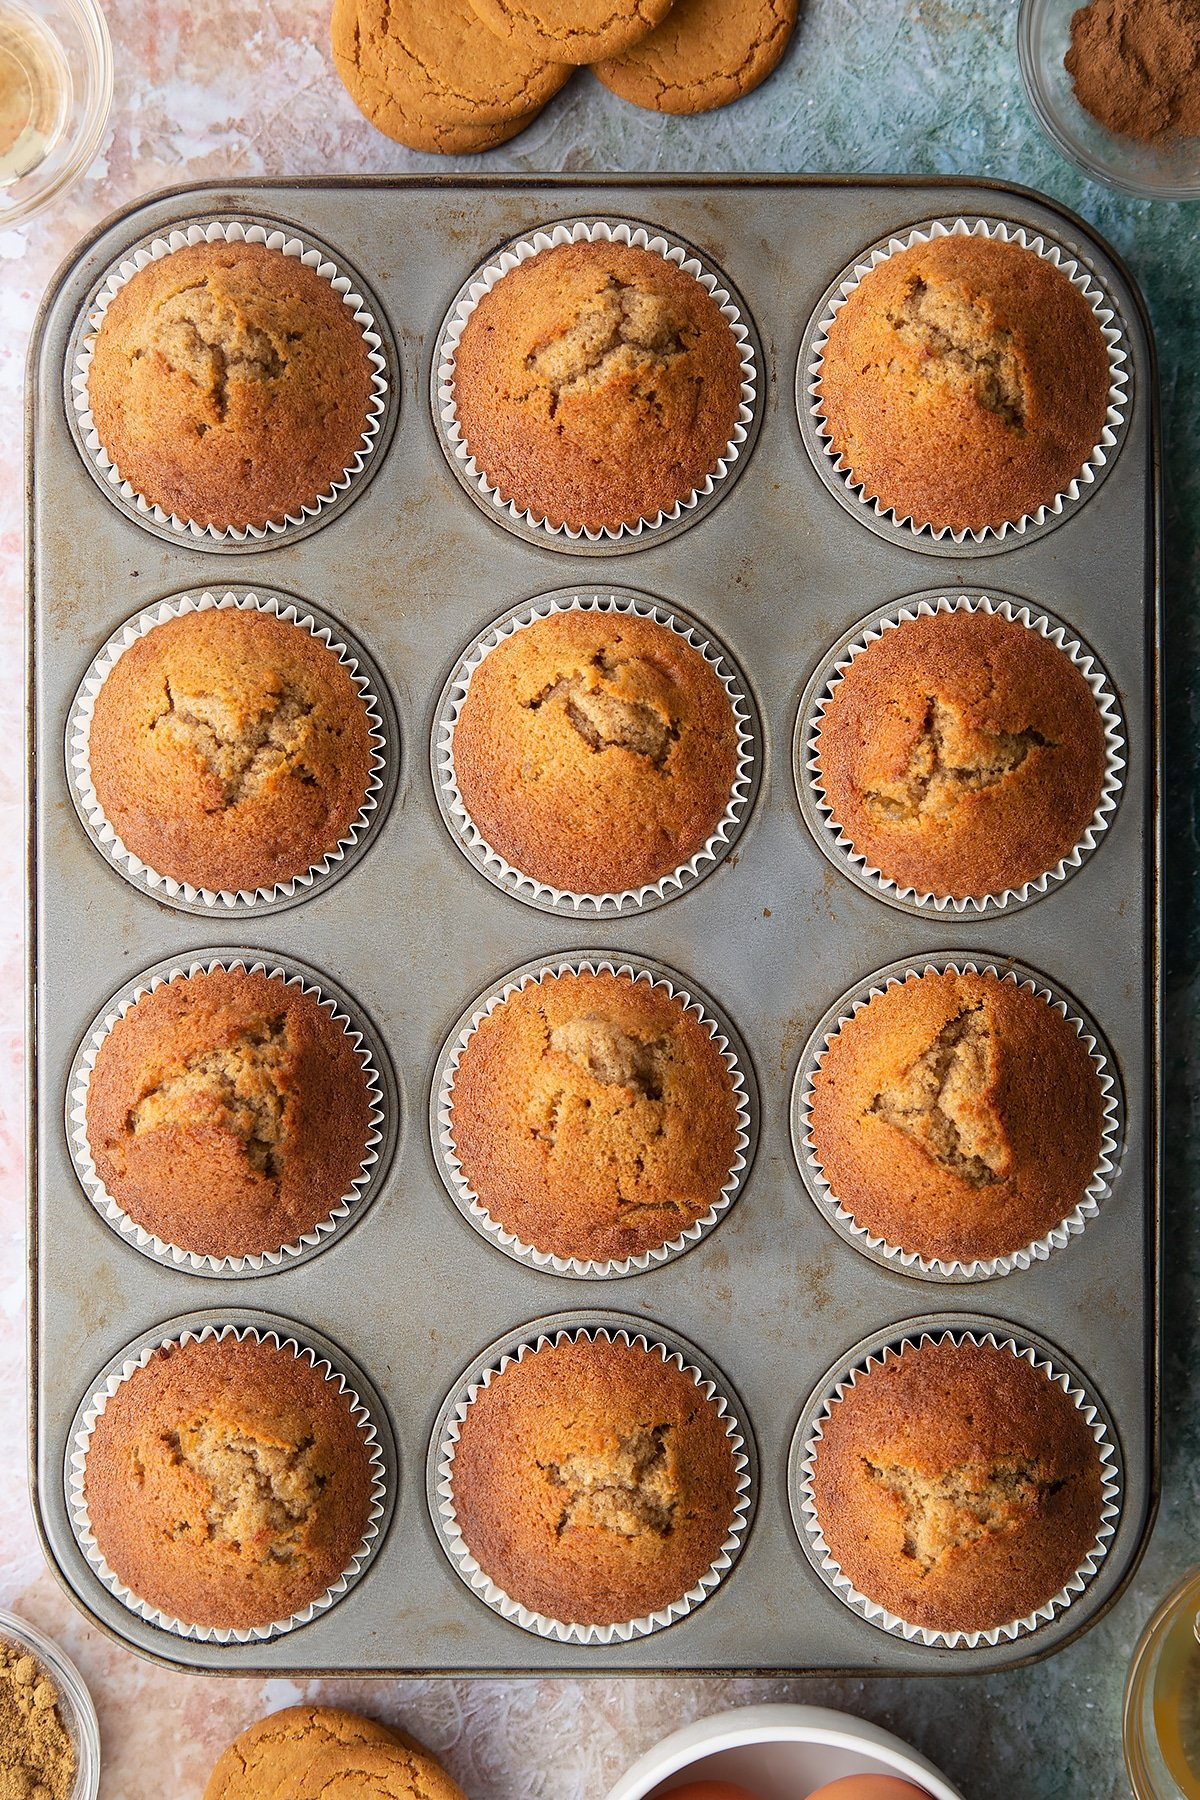 Ginger cupcakes freshly baked in a muffin tin.